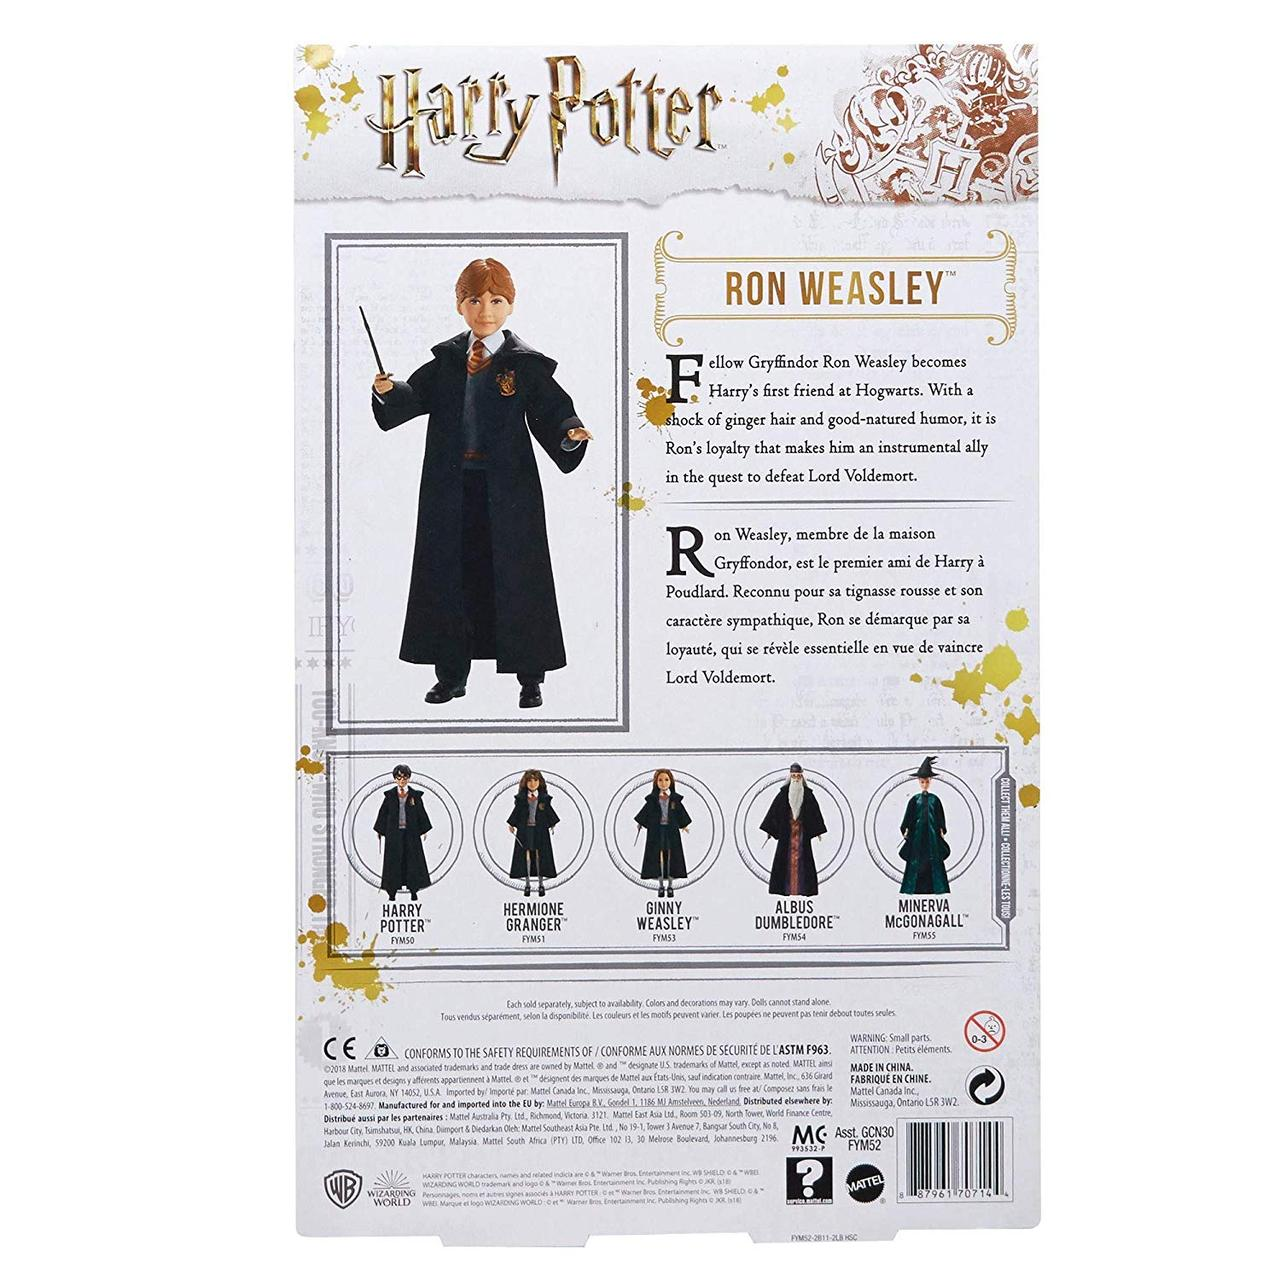 MISC ~ BARBIE DOLL 2018 HARRY POTTER CHAMBER OF SECRET RON WEASLEY MAGIC WAND